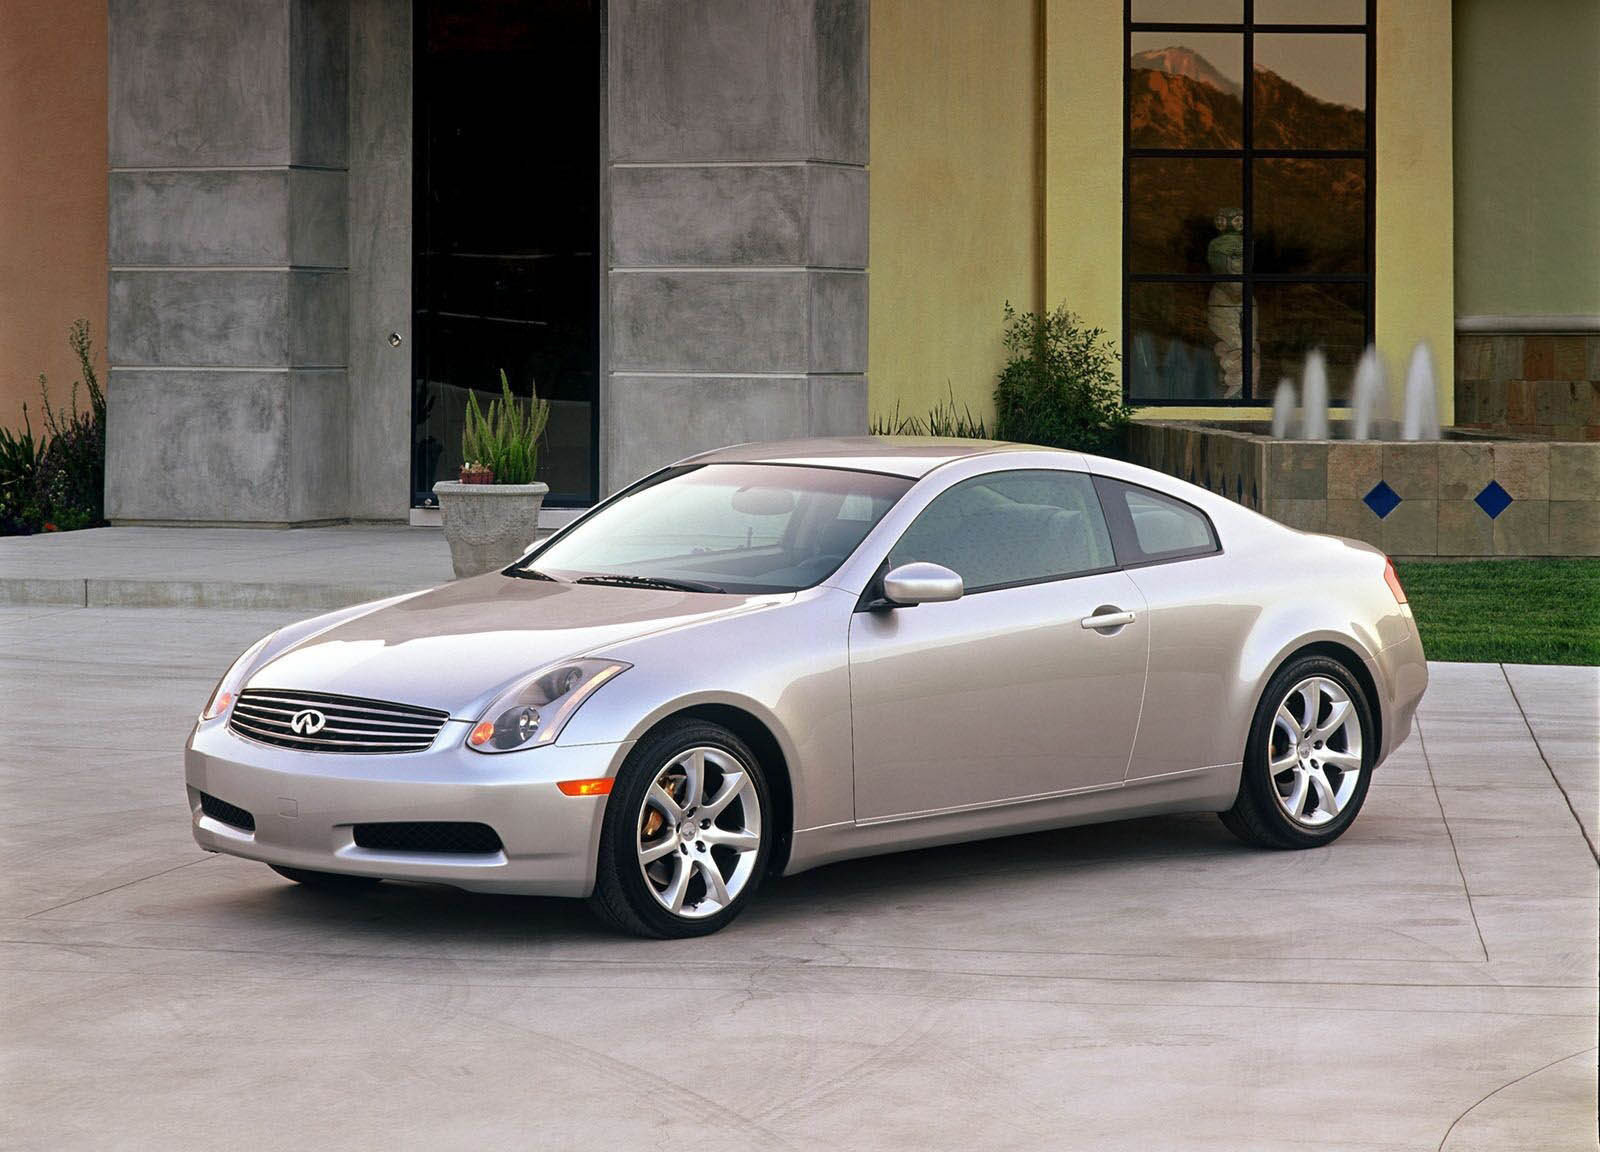 2003 infiniti g35 coupe picture 6315 car review top. Black Bedroom Furniture Sets. Home Design Ideas